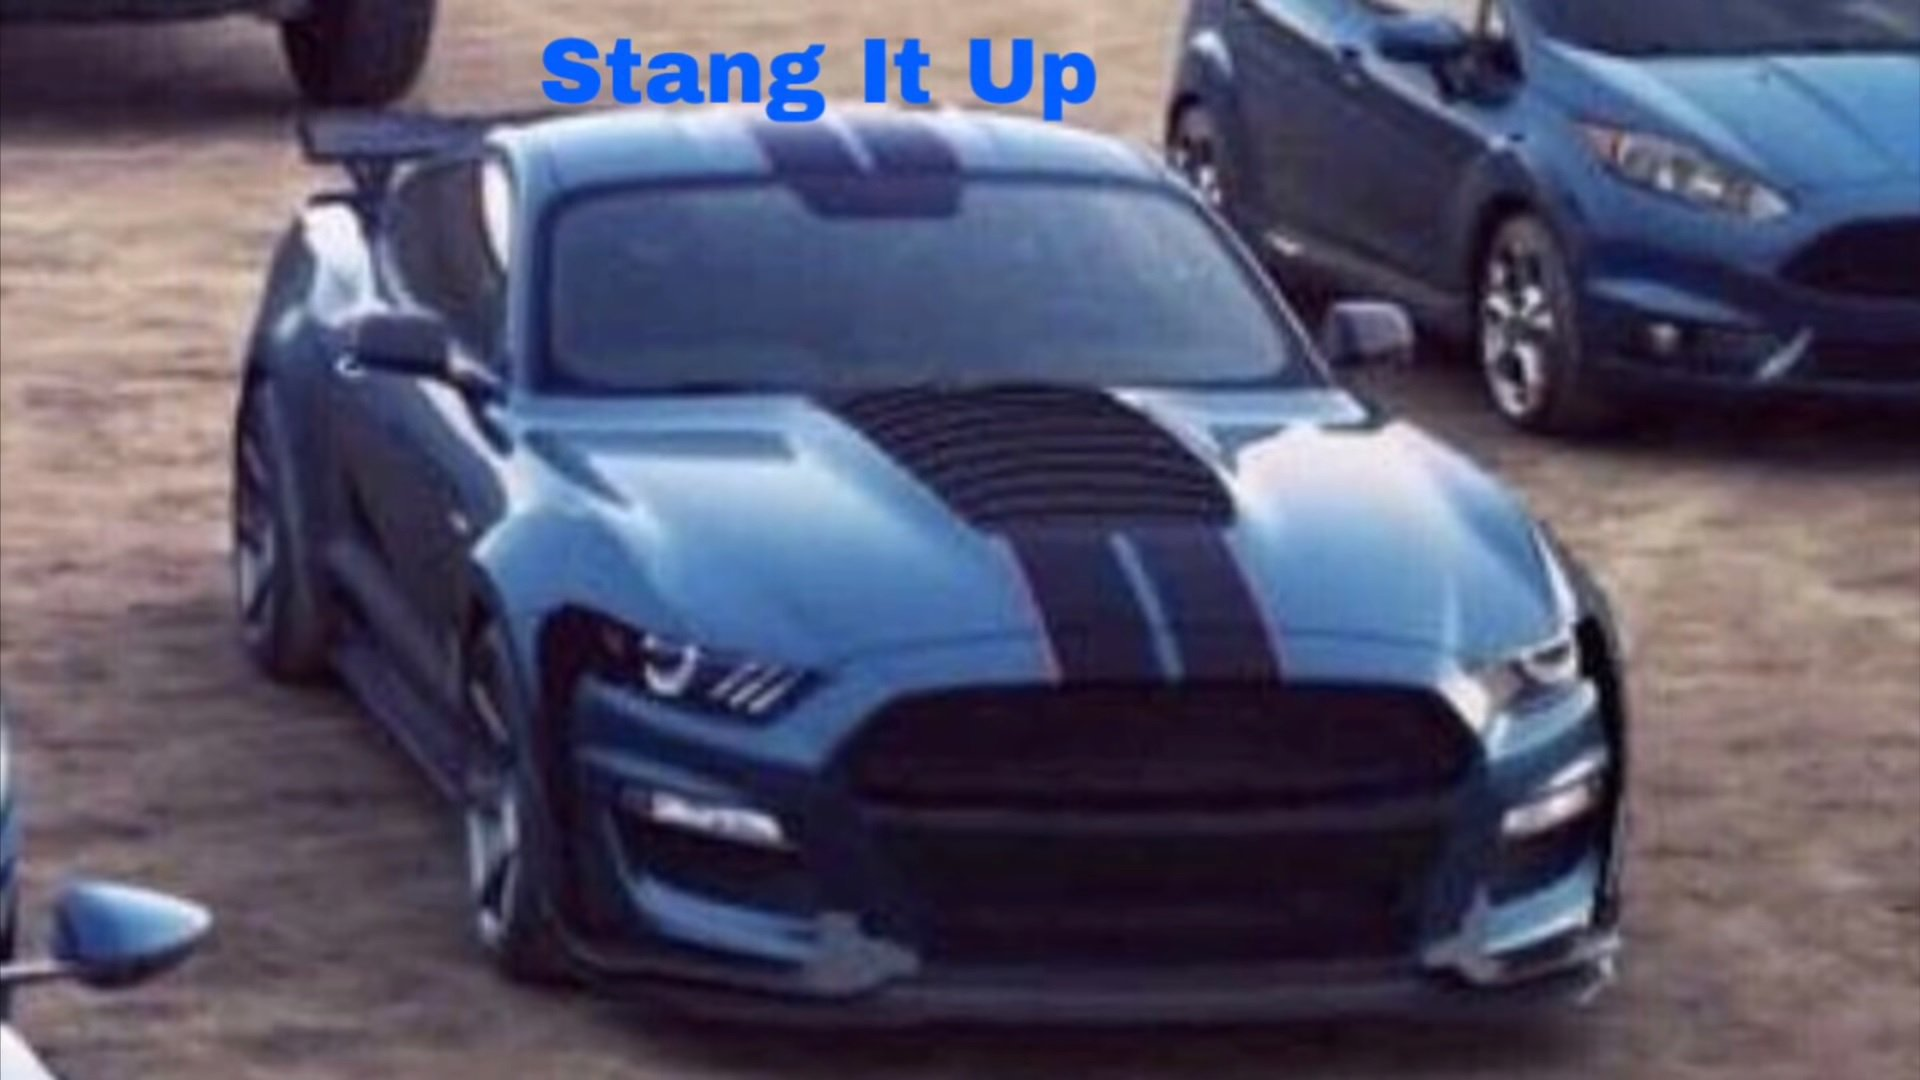 54 All New 2020 Mustang Shelby Gt350 Wallpaper